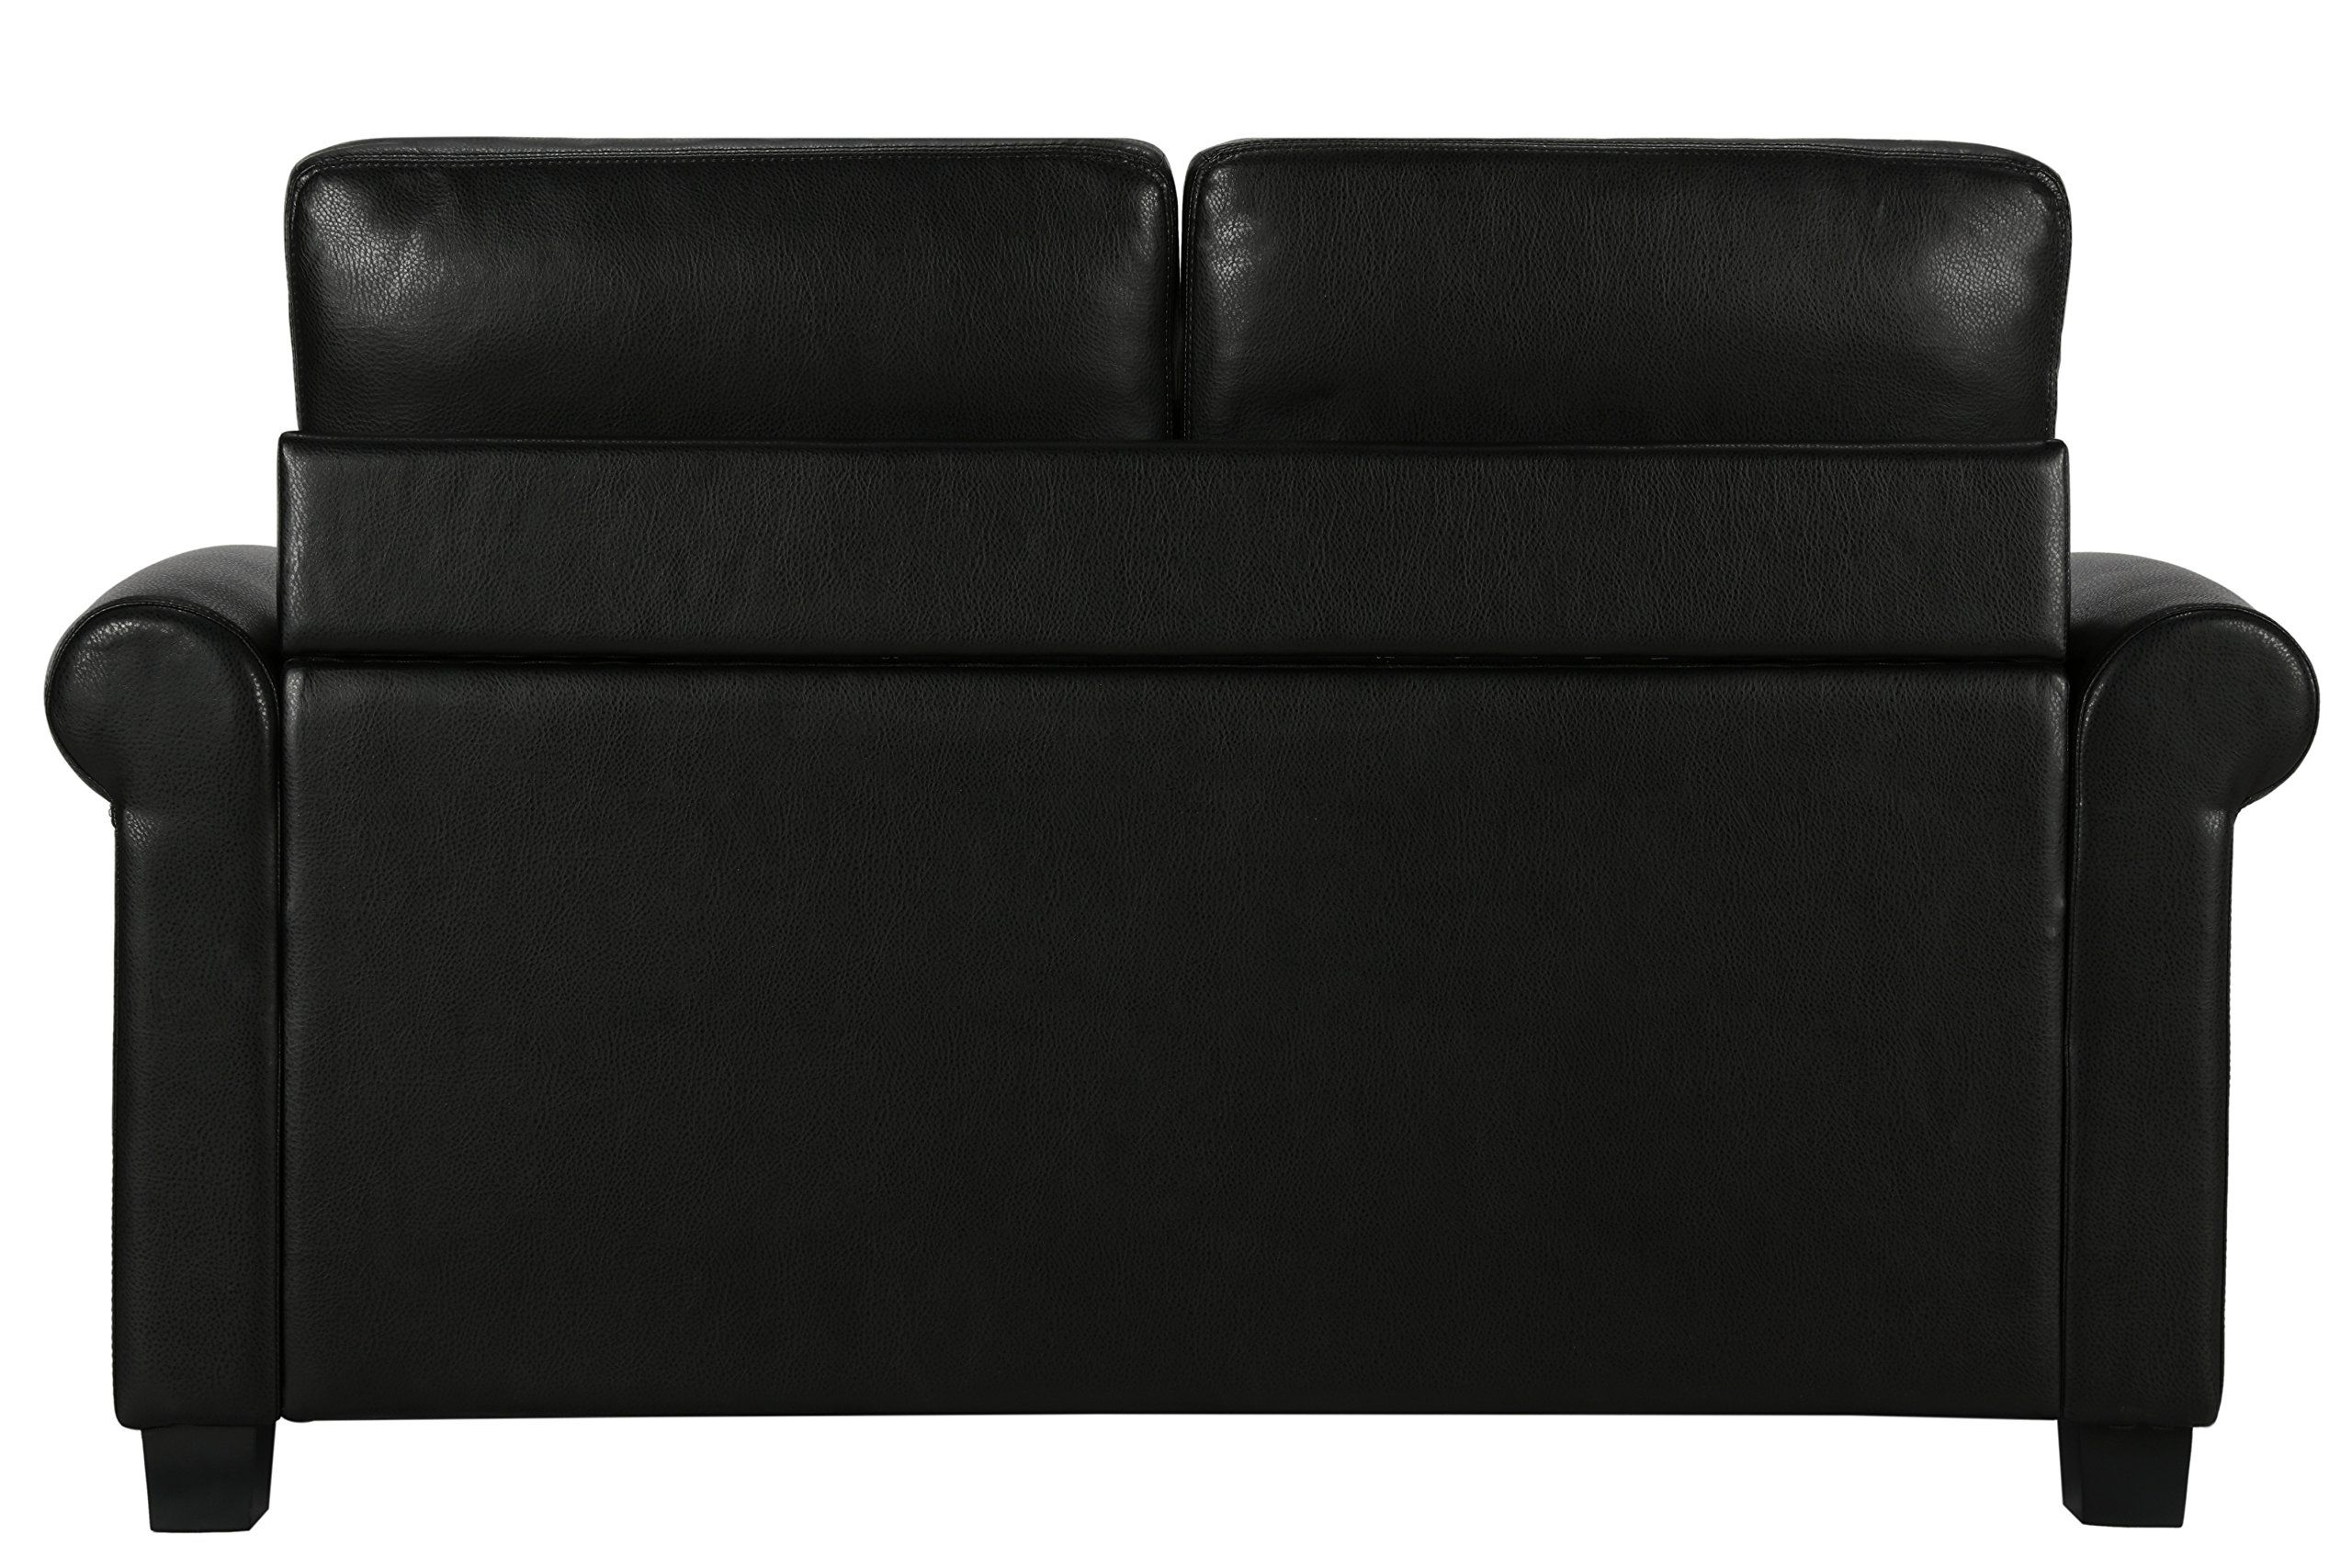 Swell Dhp Premium Sofa Bed Pull Out Couch Sleeper Sofa With Pull Gmtry Best Dining Table And Chair Ideas Images Gmtryco